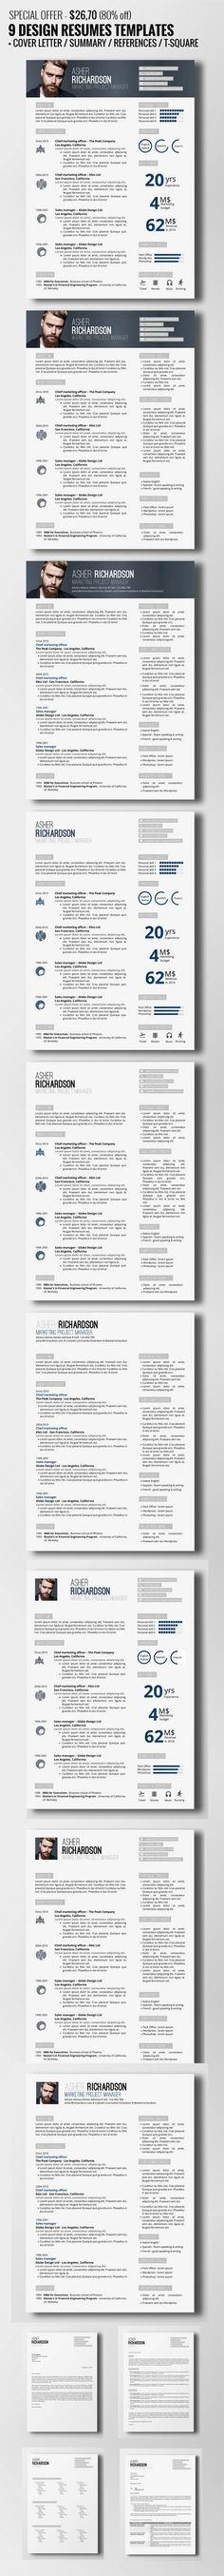 435 best Resume images on Pinterest Resume design, Design resume - skills in a resume